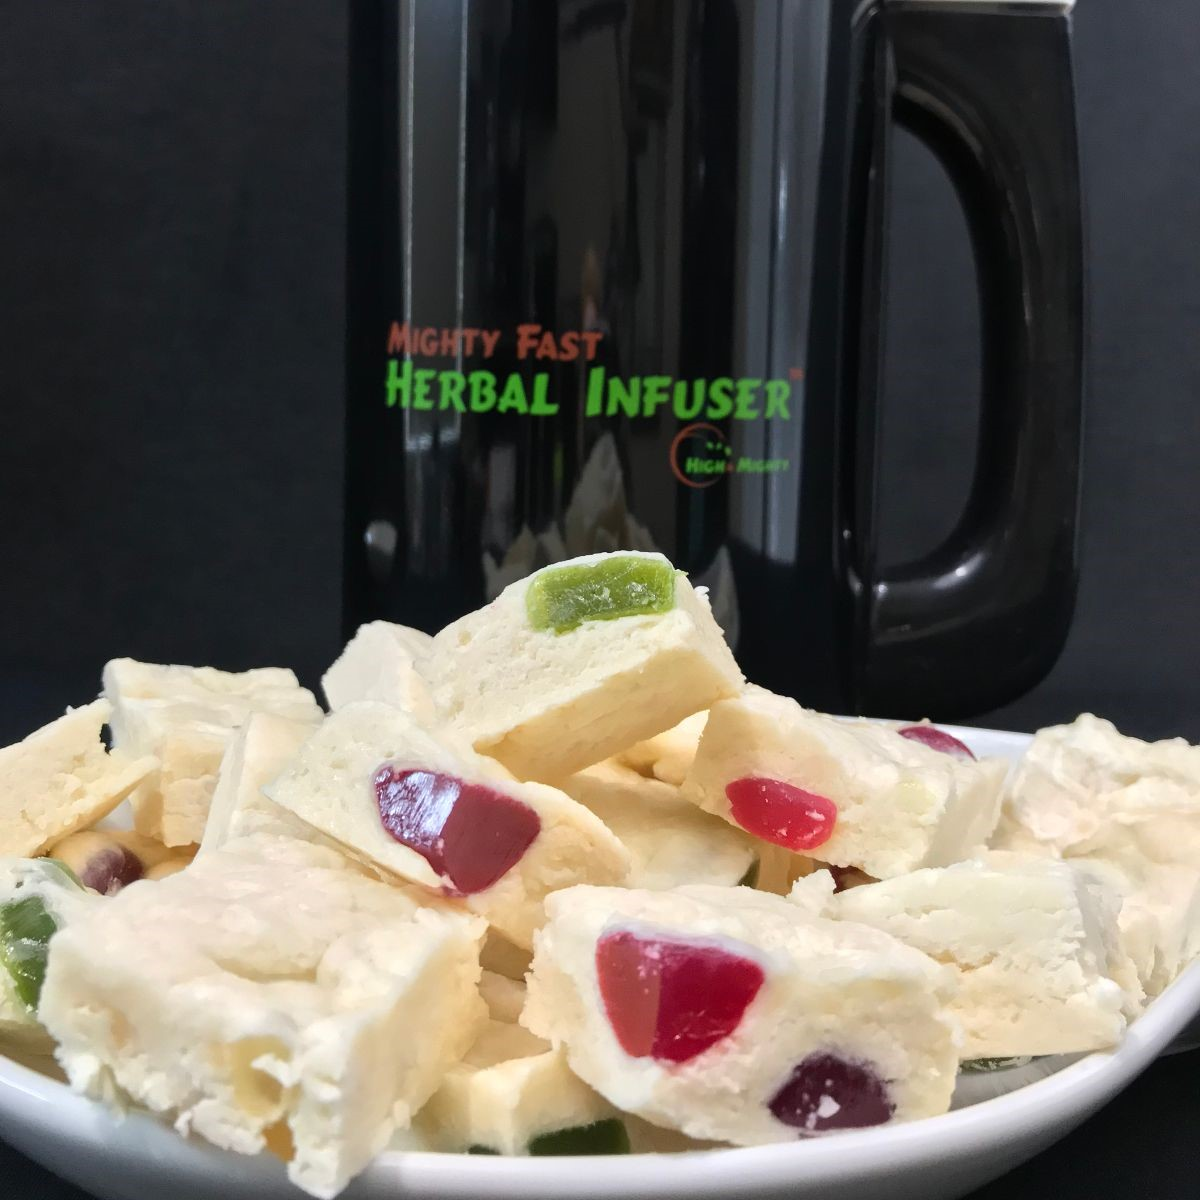 """""""It's not called MIGHTY FAST for nothing, Process took 45 minutes. No guess work,  just follow directions. Edibles were incredible""""-robin–USE Code """" chef420 """" for $30.00 OFF!!   https://t.co/Eu0x9NNC5G   #Chef420 @herbalinfuser #Edibles #Medibles #Happy420 #420day #420blazeit https://t.co/7lNrYxJm2G"""